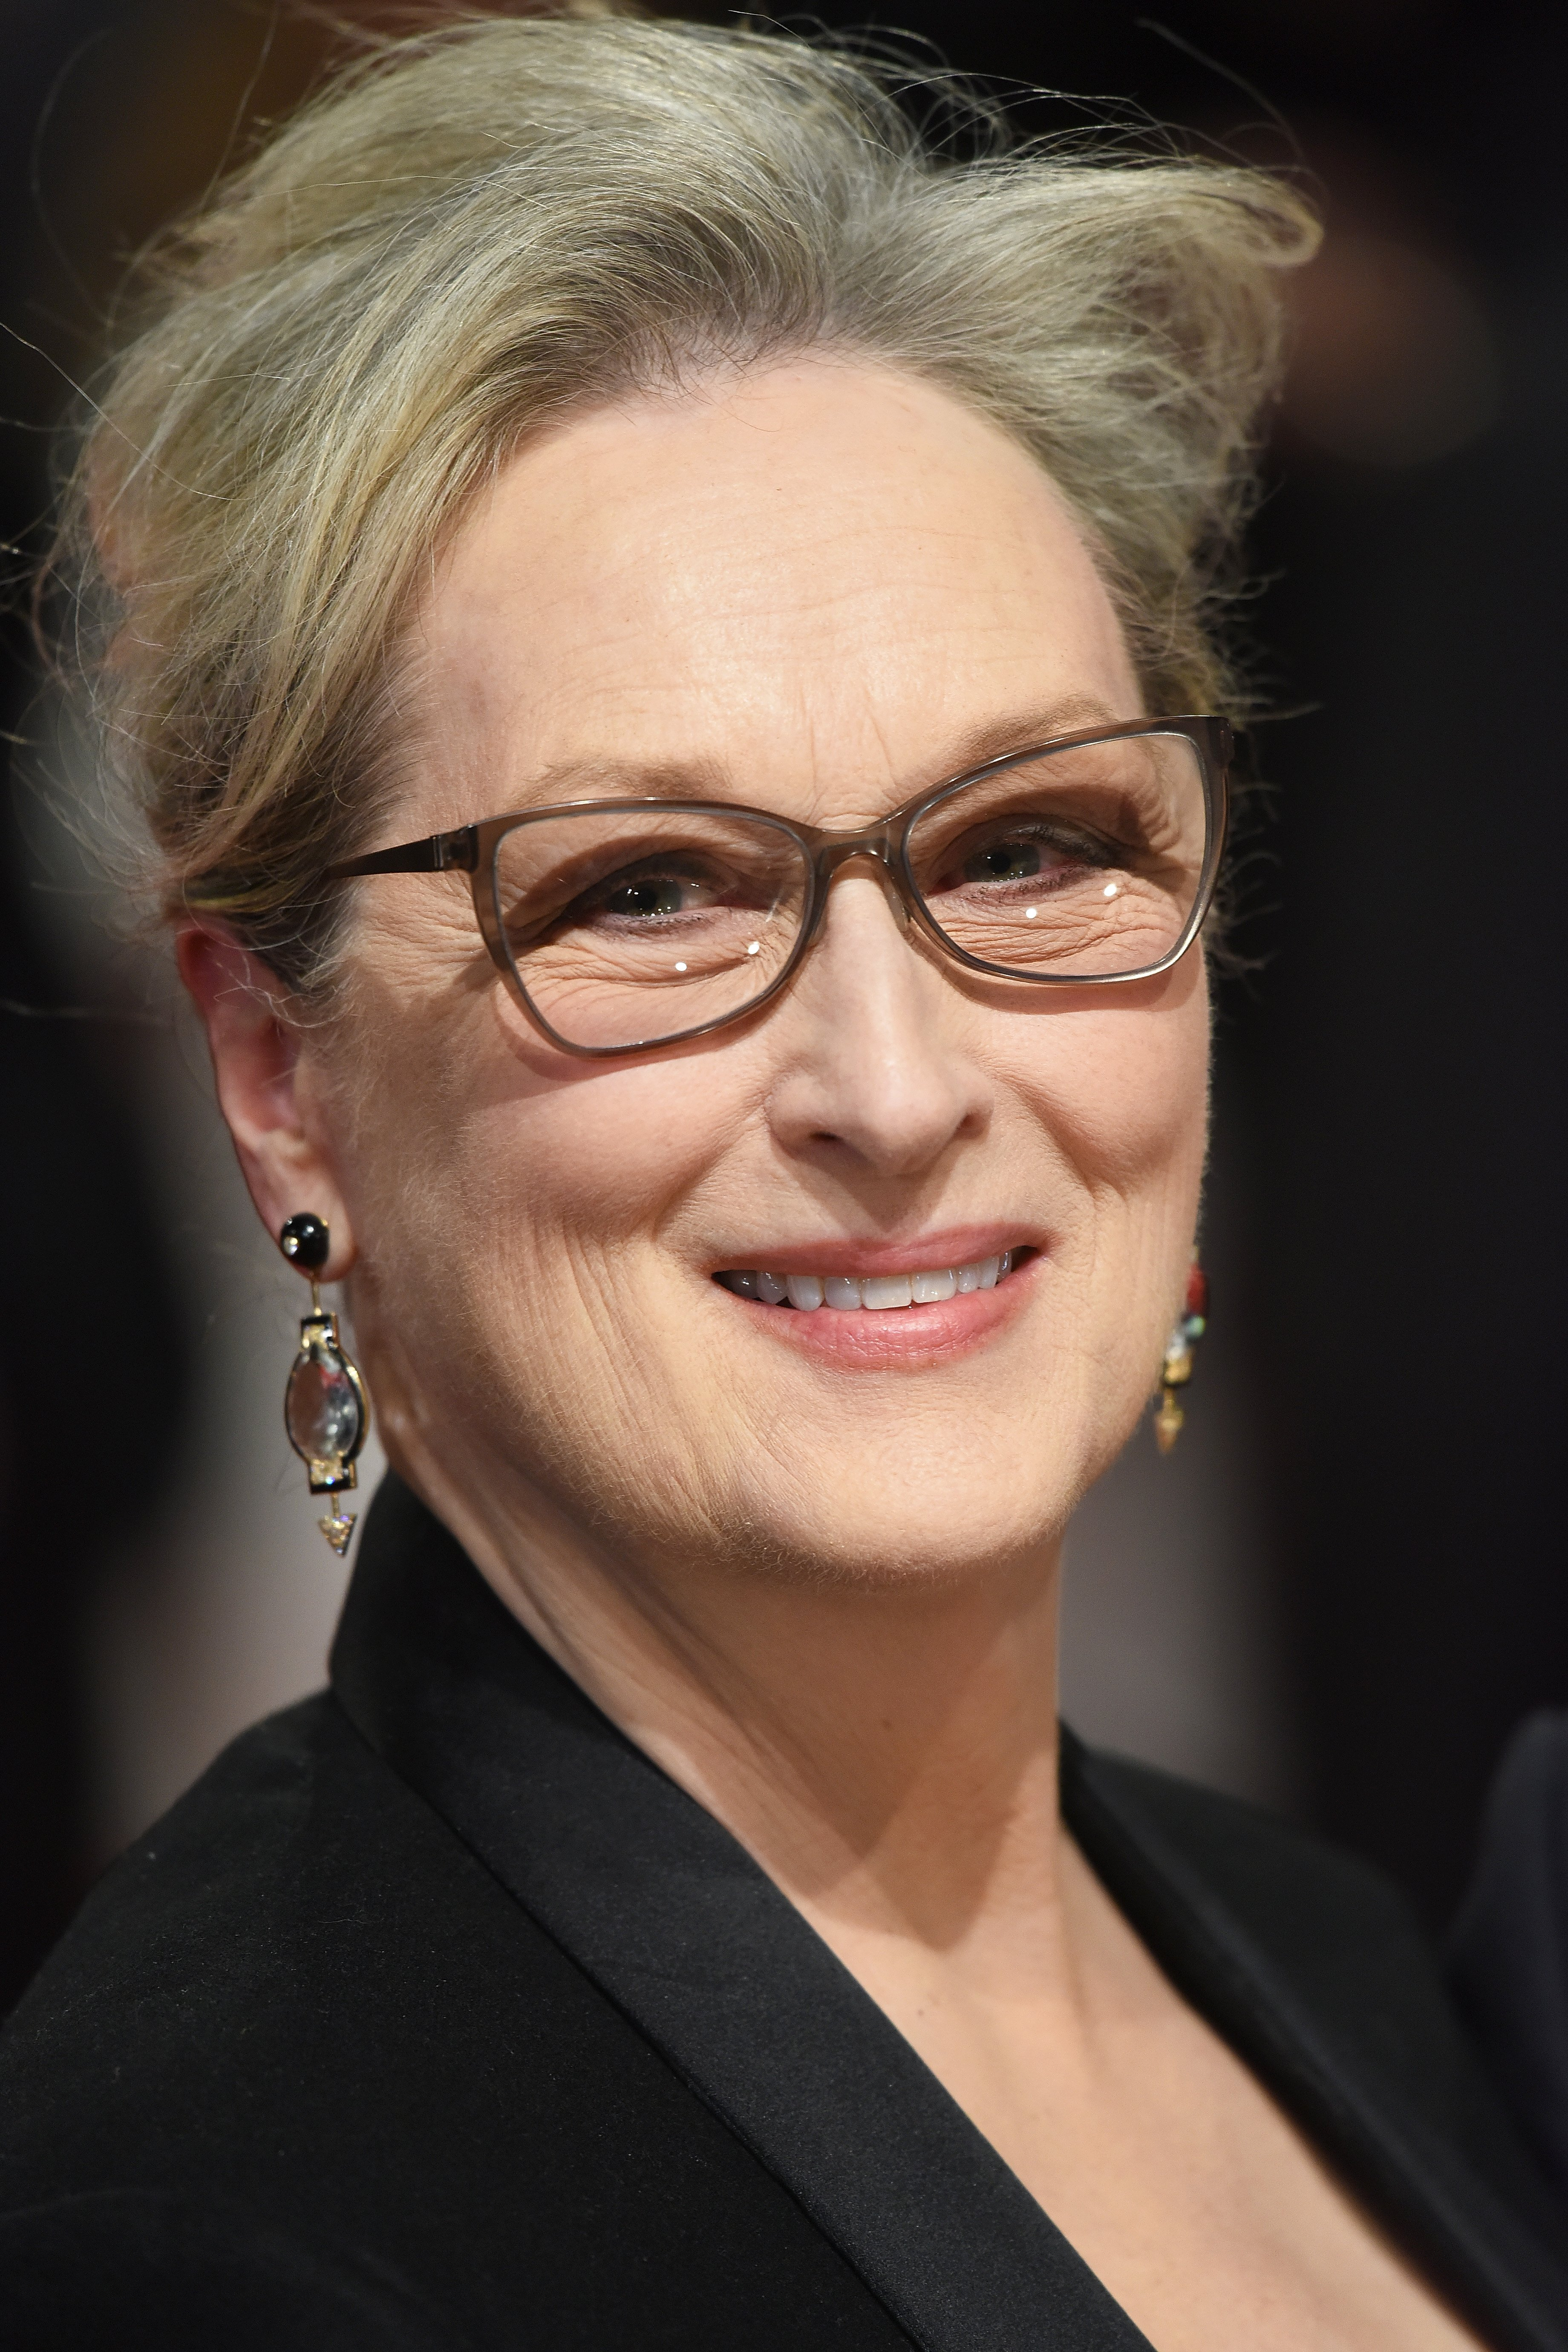 Image Credits: Getty Images / Dave J Hogan | Meryl Streep attends the 70th EE British Academy Film Awards (BAFTA) at Royal Albert Hall on February 12, 2017 in London, England.